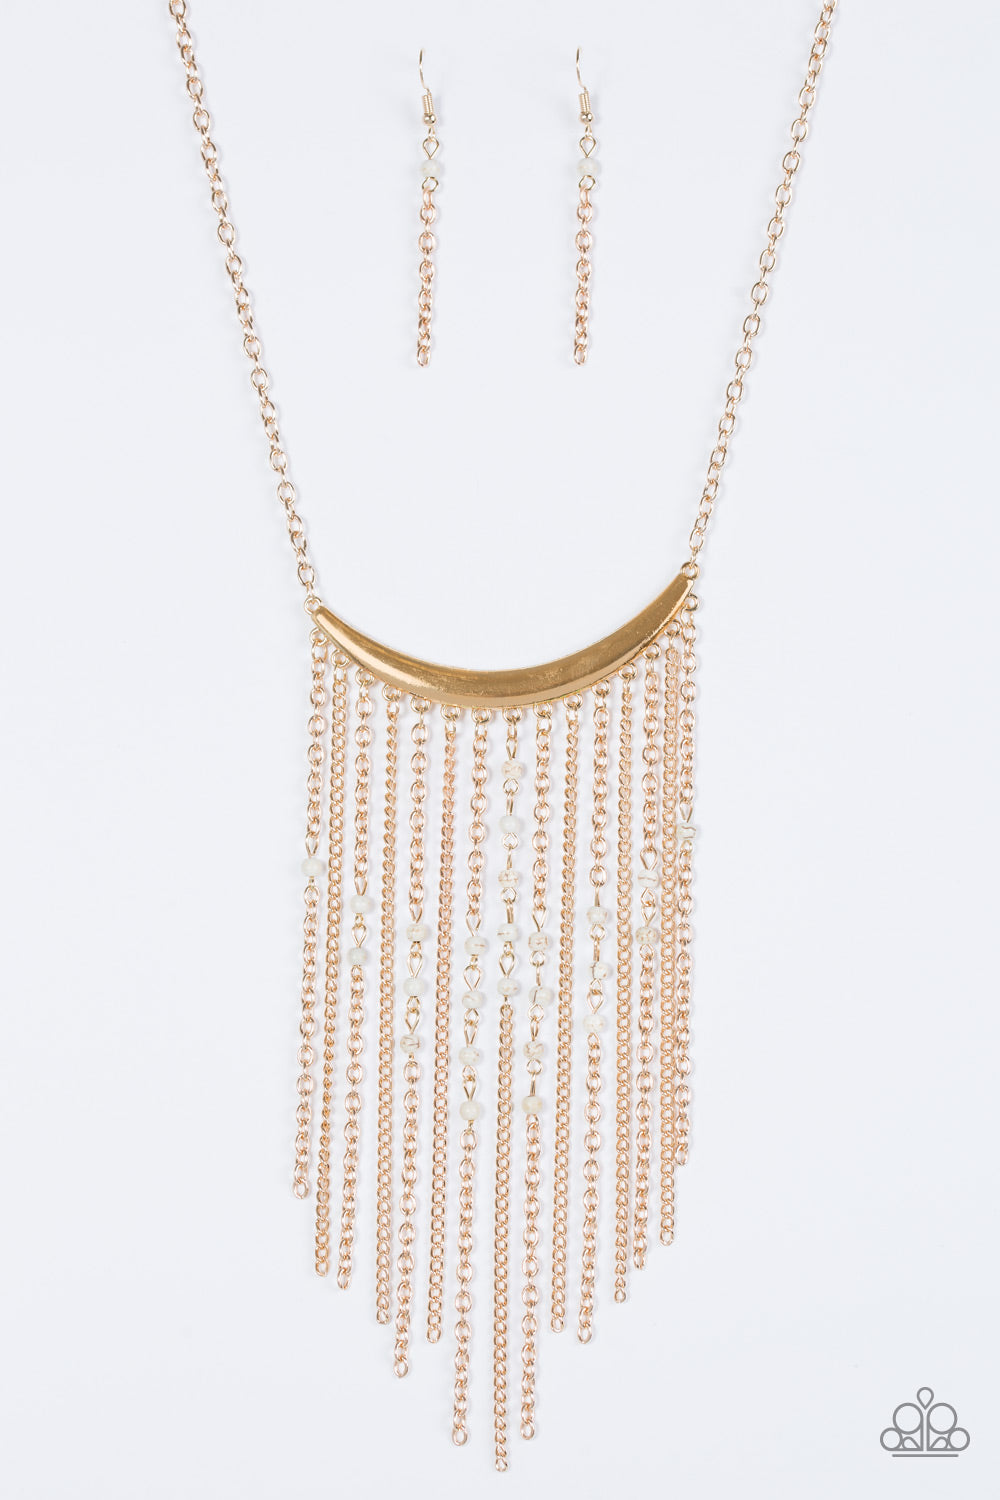 Paparazzi Accessories Runaway Rumba - Gold Necklace - Be Adored Jewelry